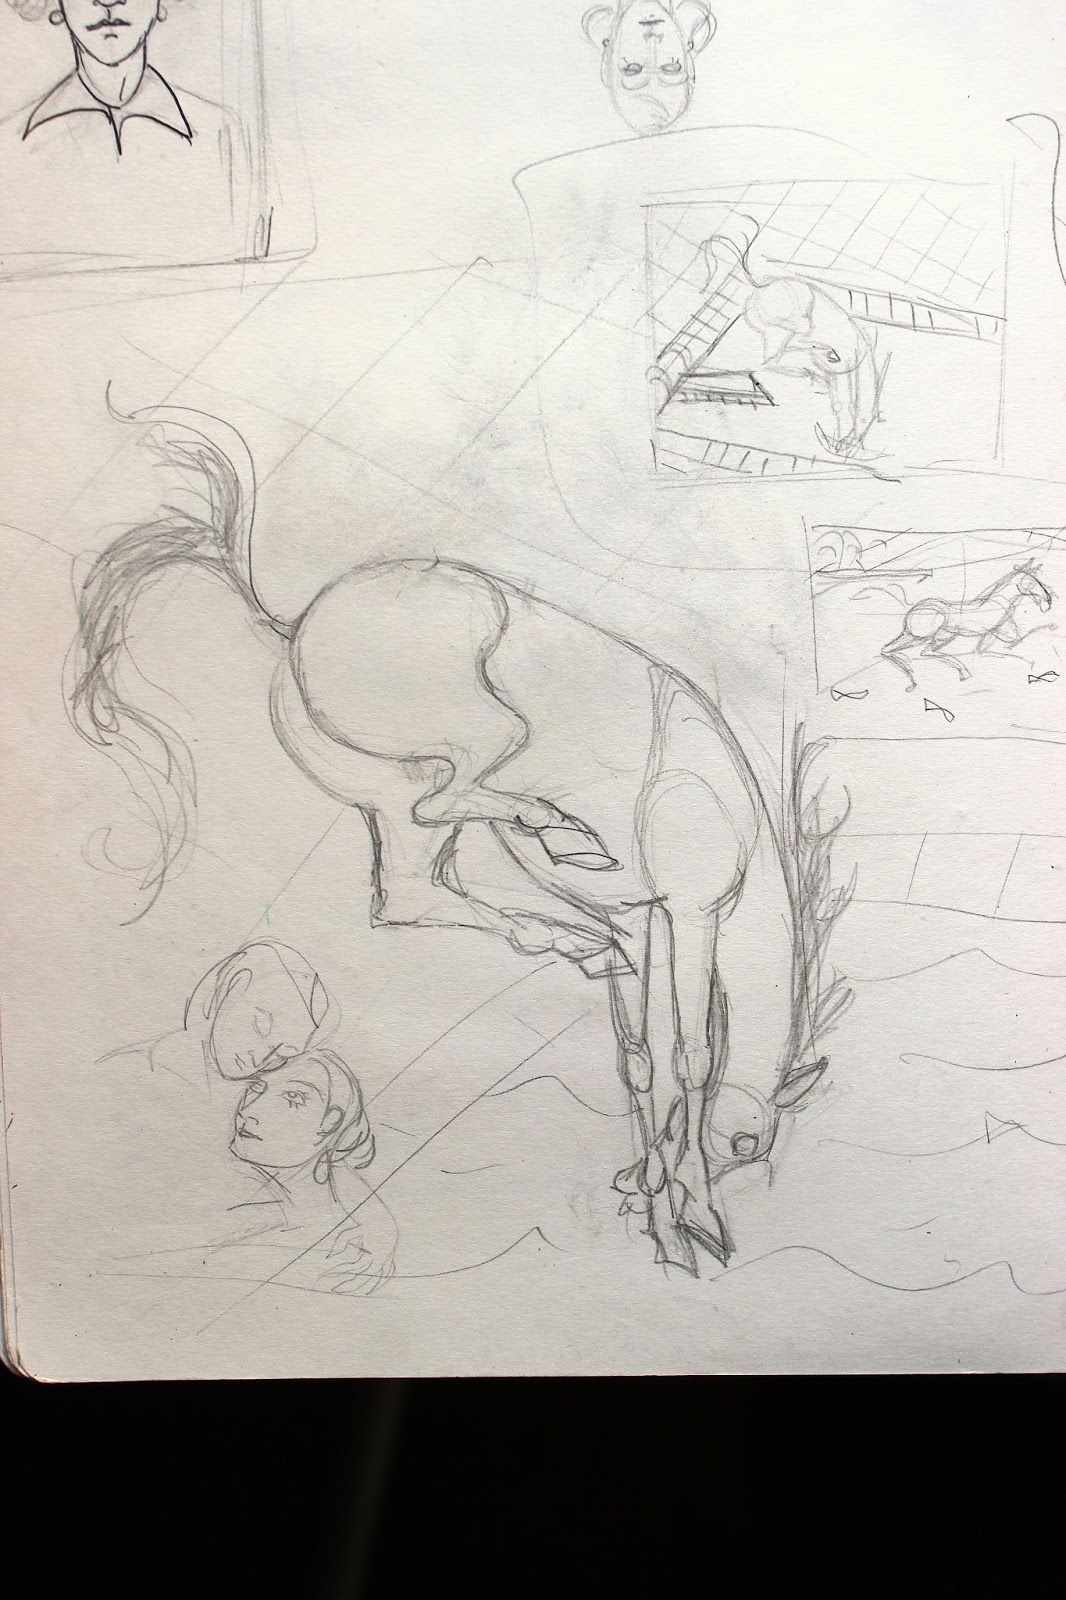 Sketchpad Notebook Sketch Drawing Pencil Plunging Horse